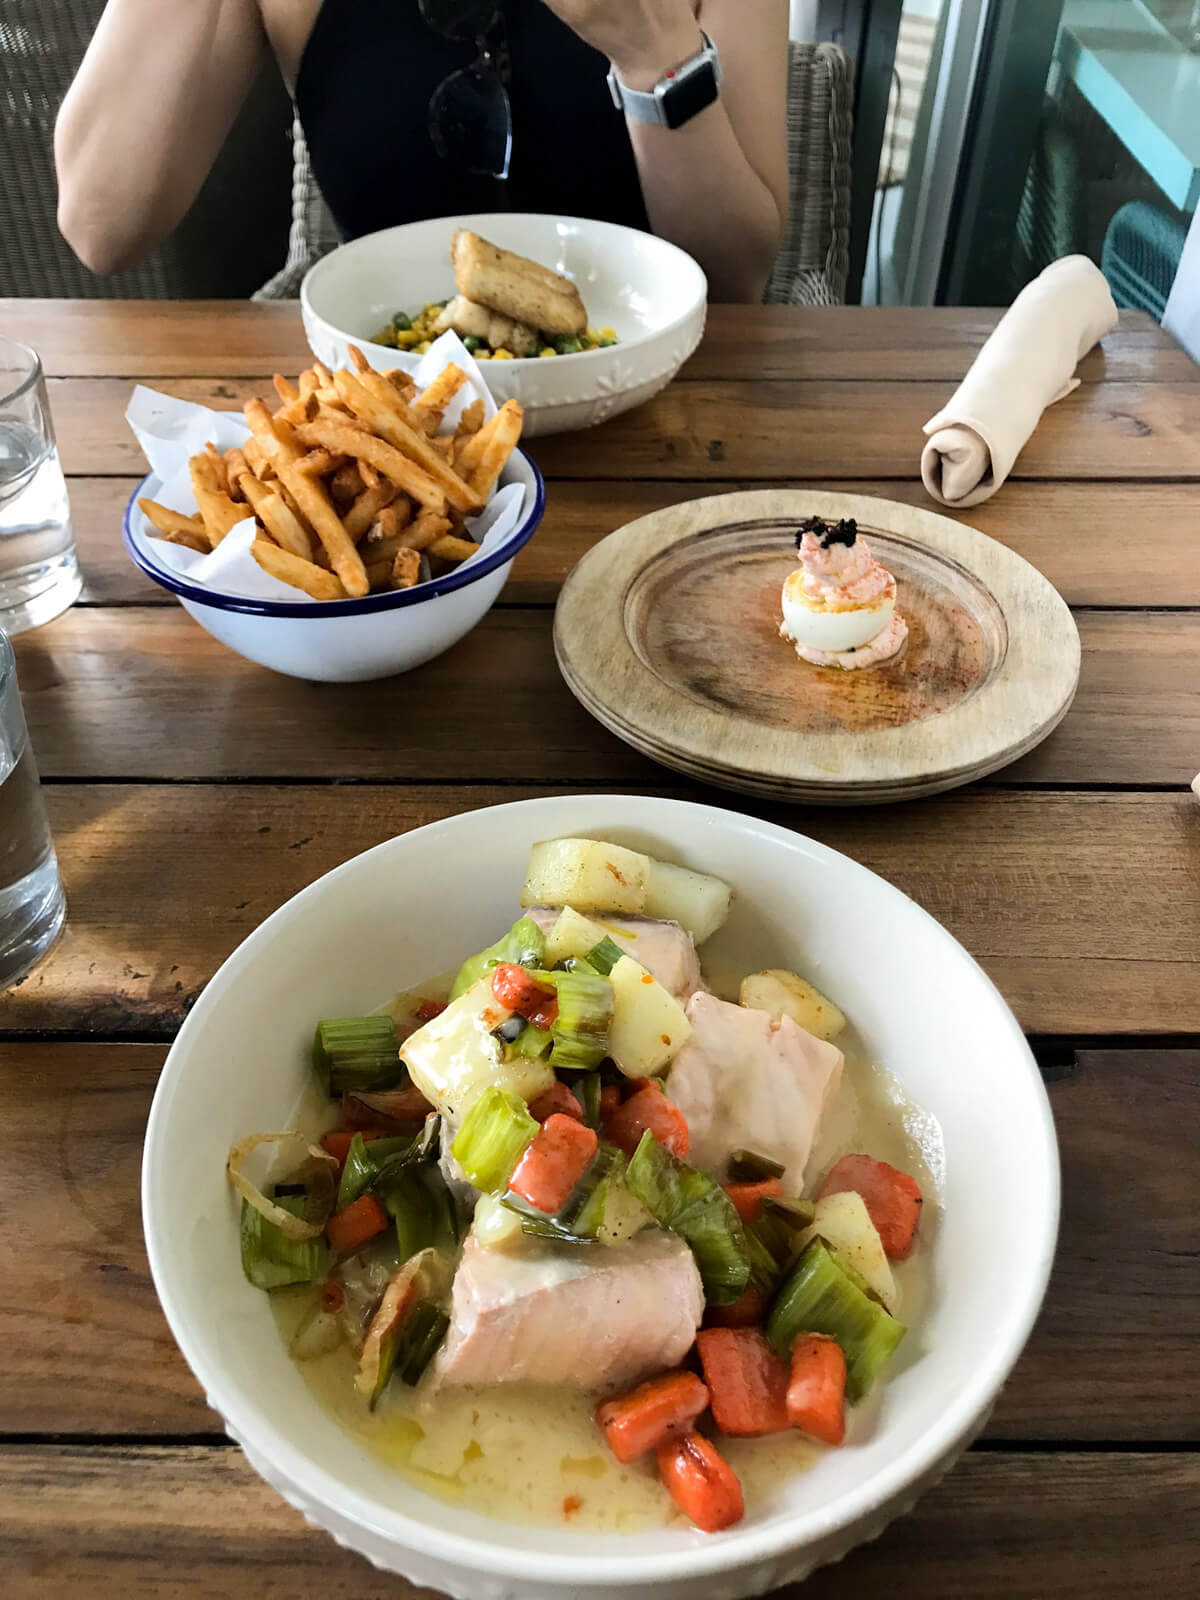 A bowl with cooked fish and vegetables with a soupy base. It's sitting on a wooden table, with a bowl of chips, another dish consisting of an egg decorated with seafood, and a bowl in the distance also containing fish and vegetables